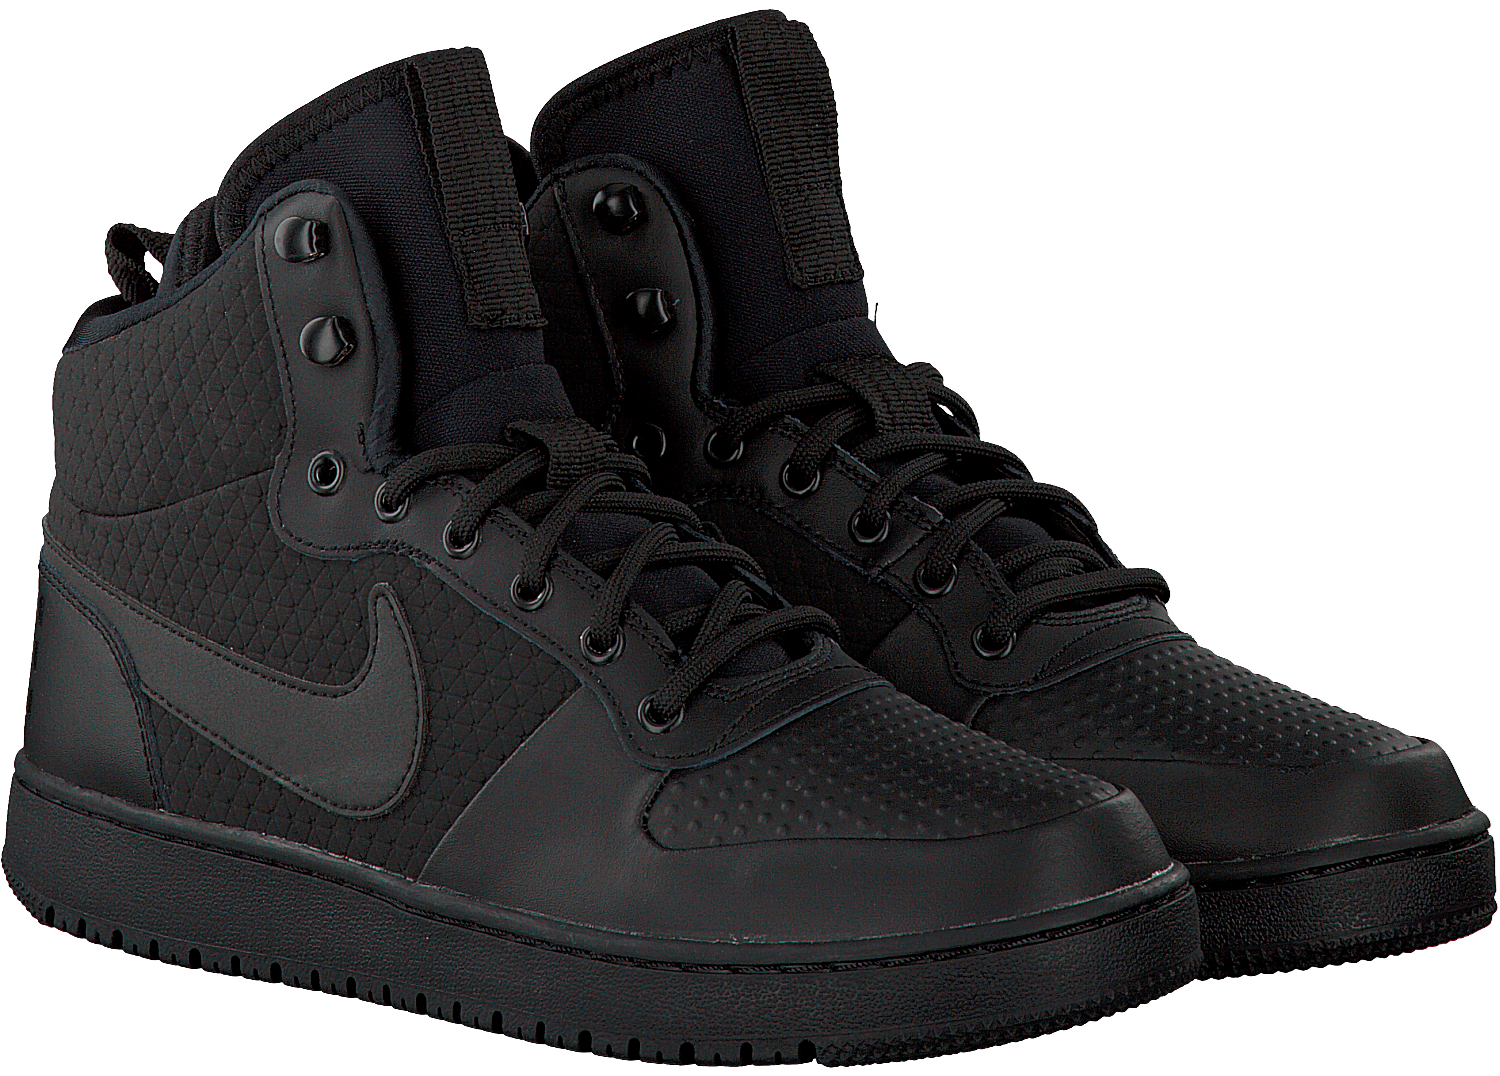 Nike Nike Schuhe Court Borough Mid Winter braun Herren